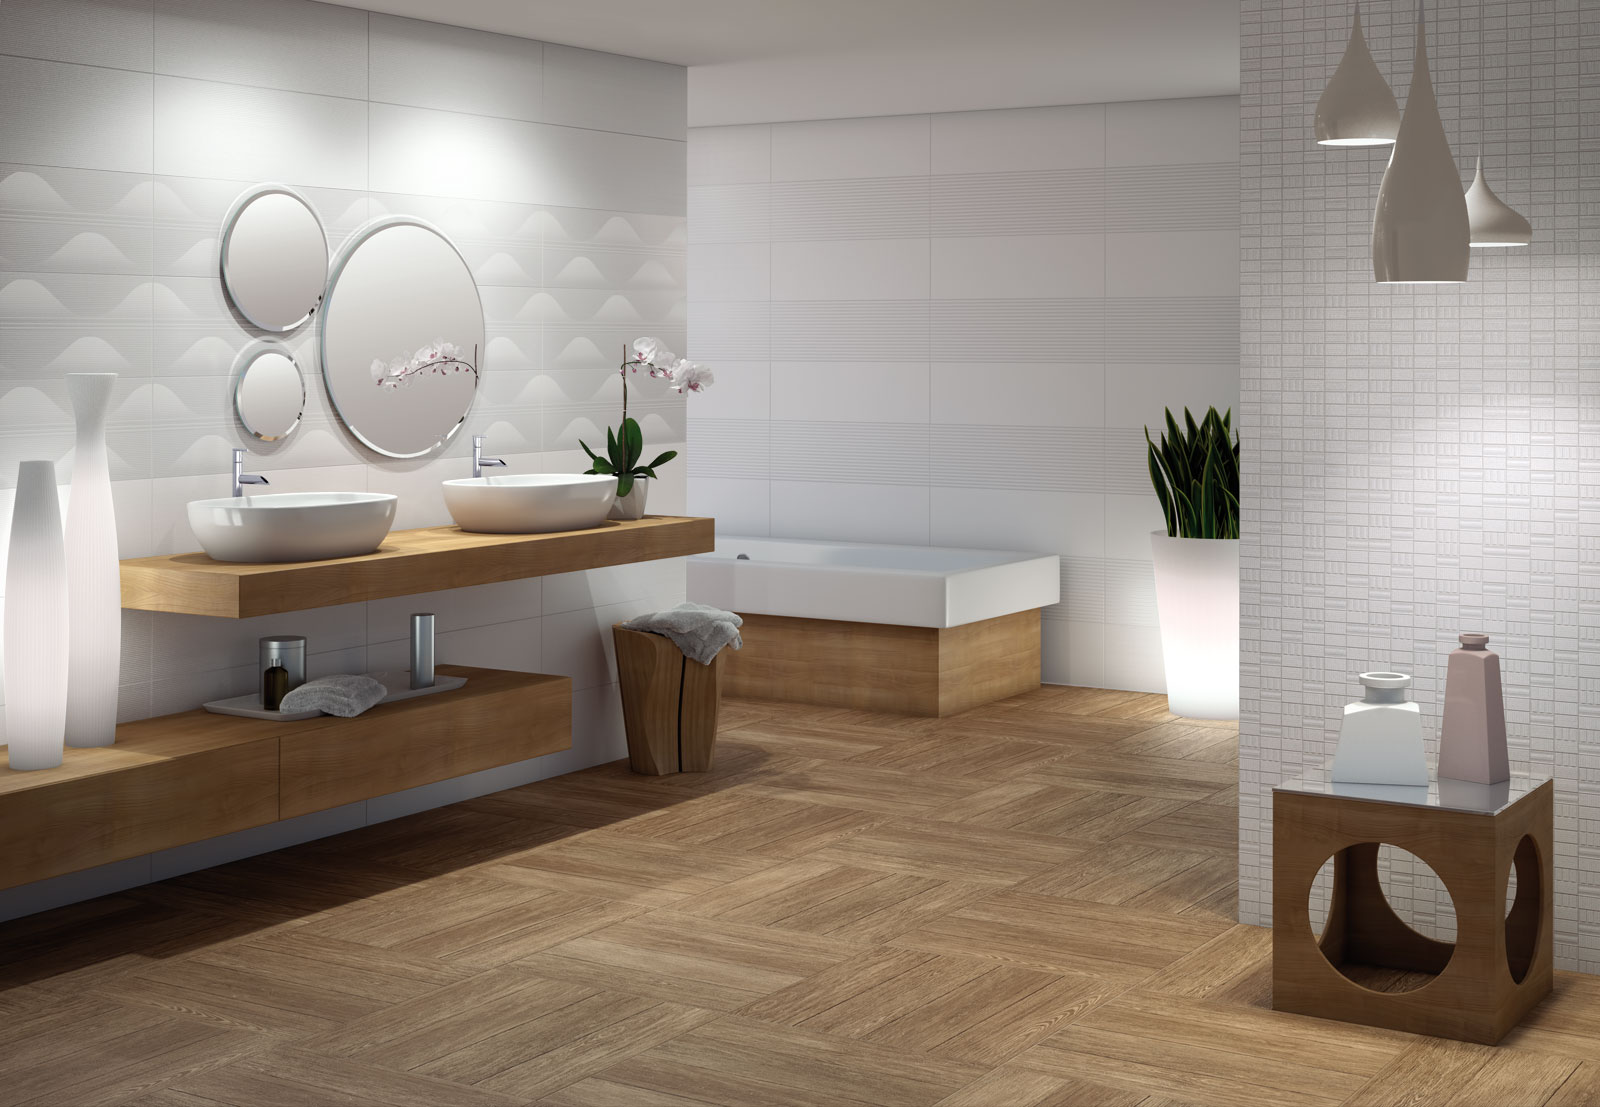 Verano spa and bathroom porcelain stoneware marazzi - Gres para banos ...